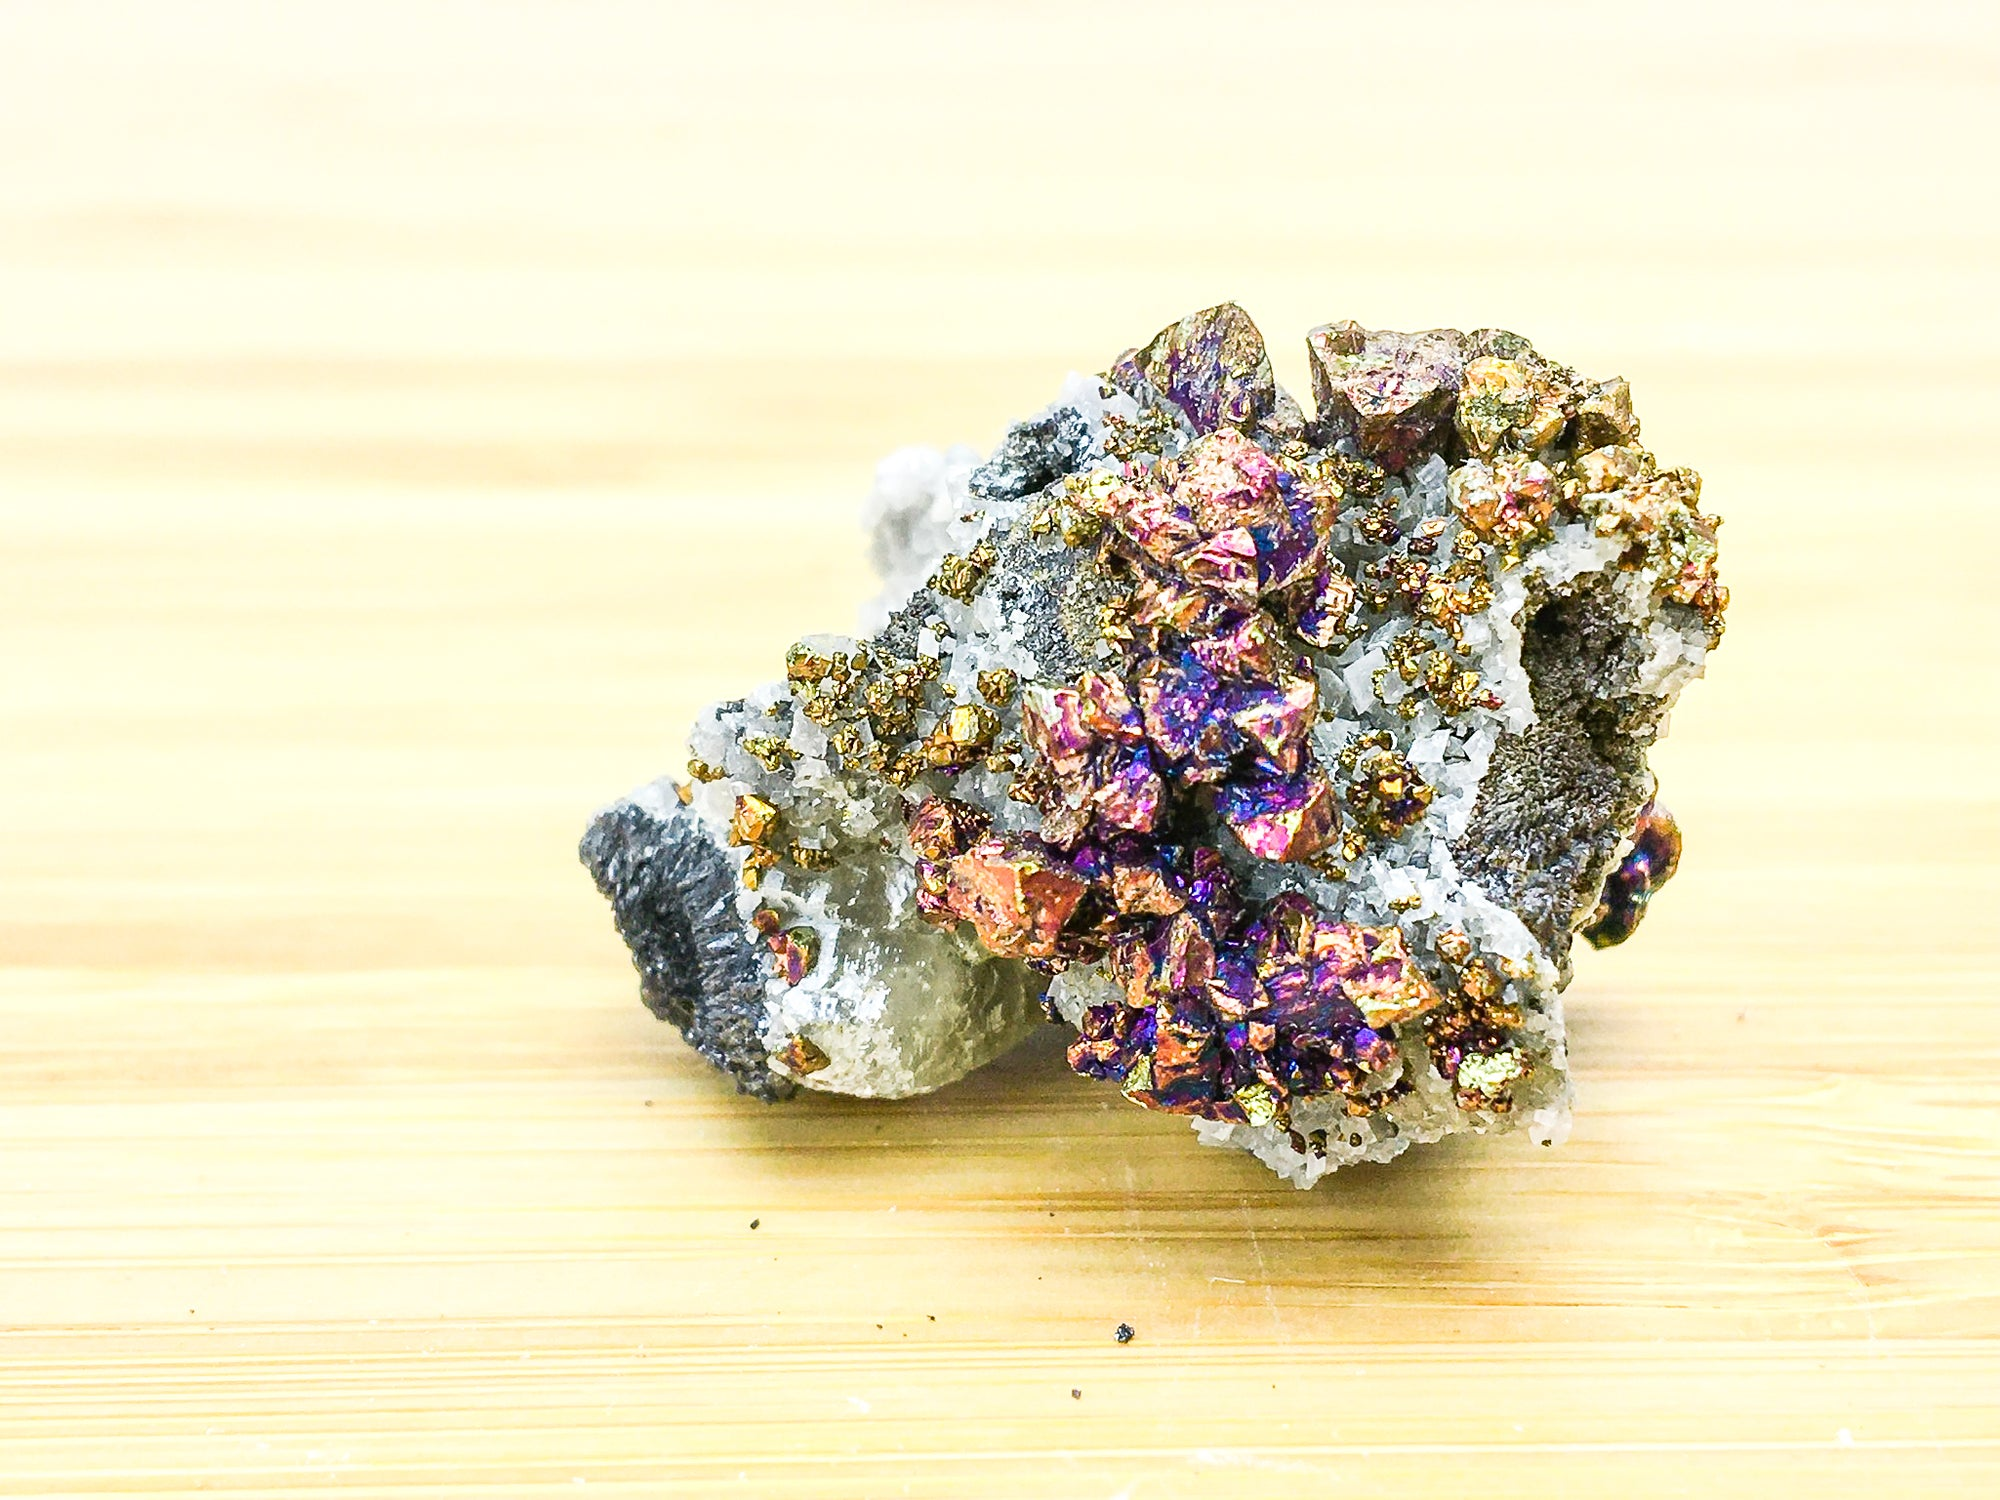 oxidised purple and gold iridescent chalcopyrite on a white dolomite bed, some calcite is also present